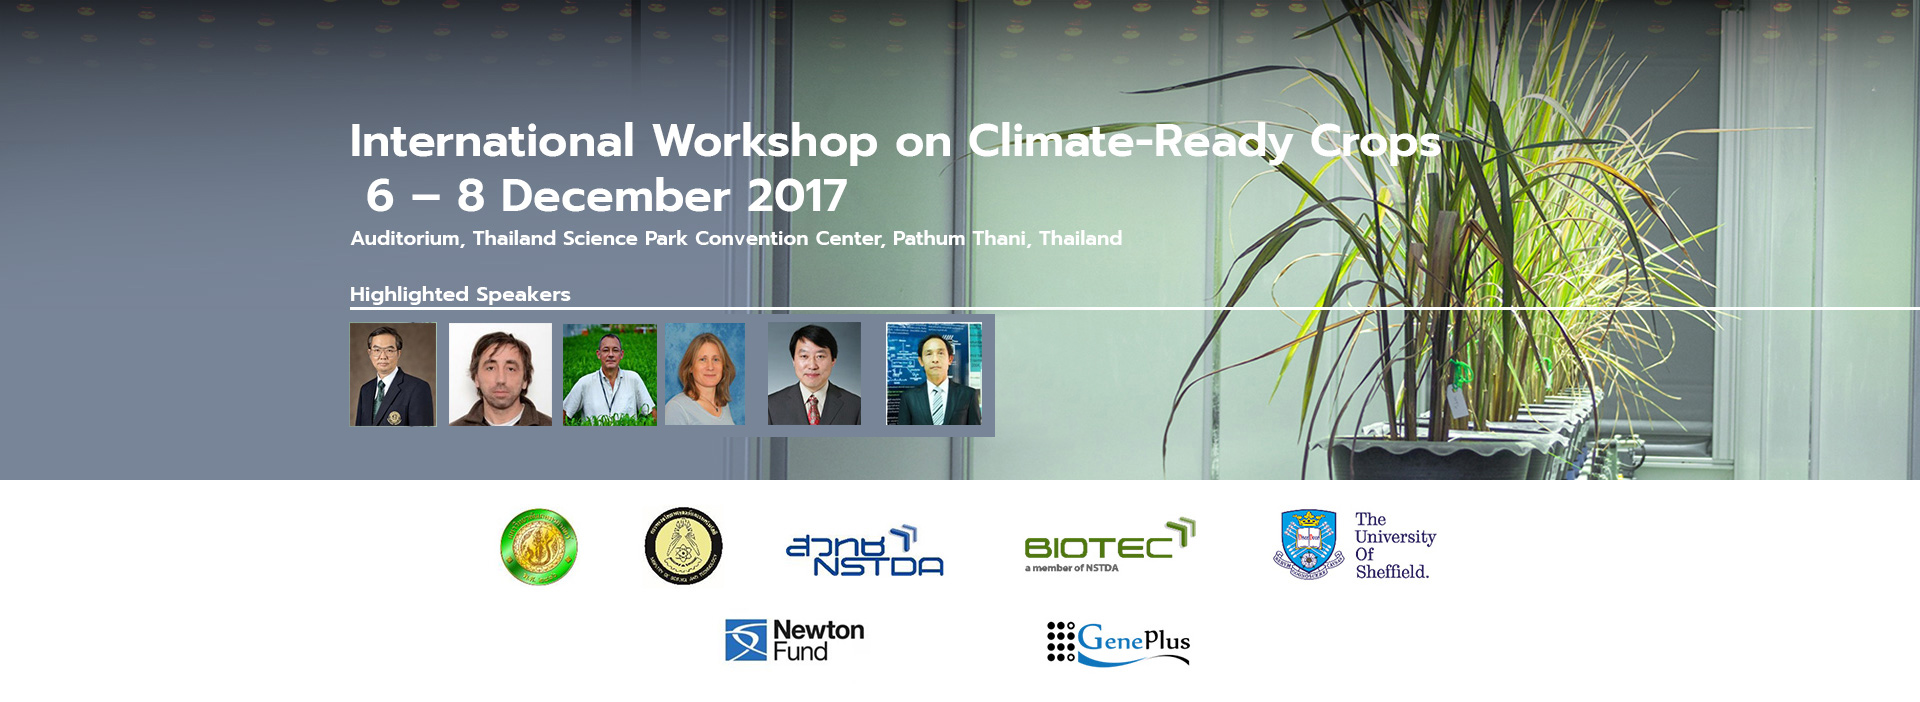 International Workshop on Climate-Ready Crops